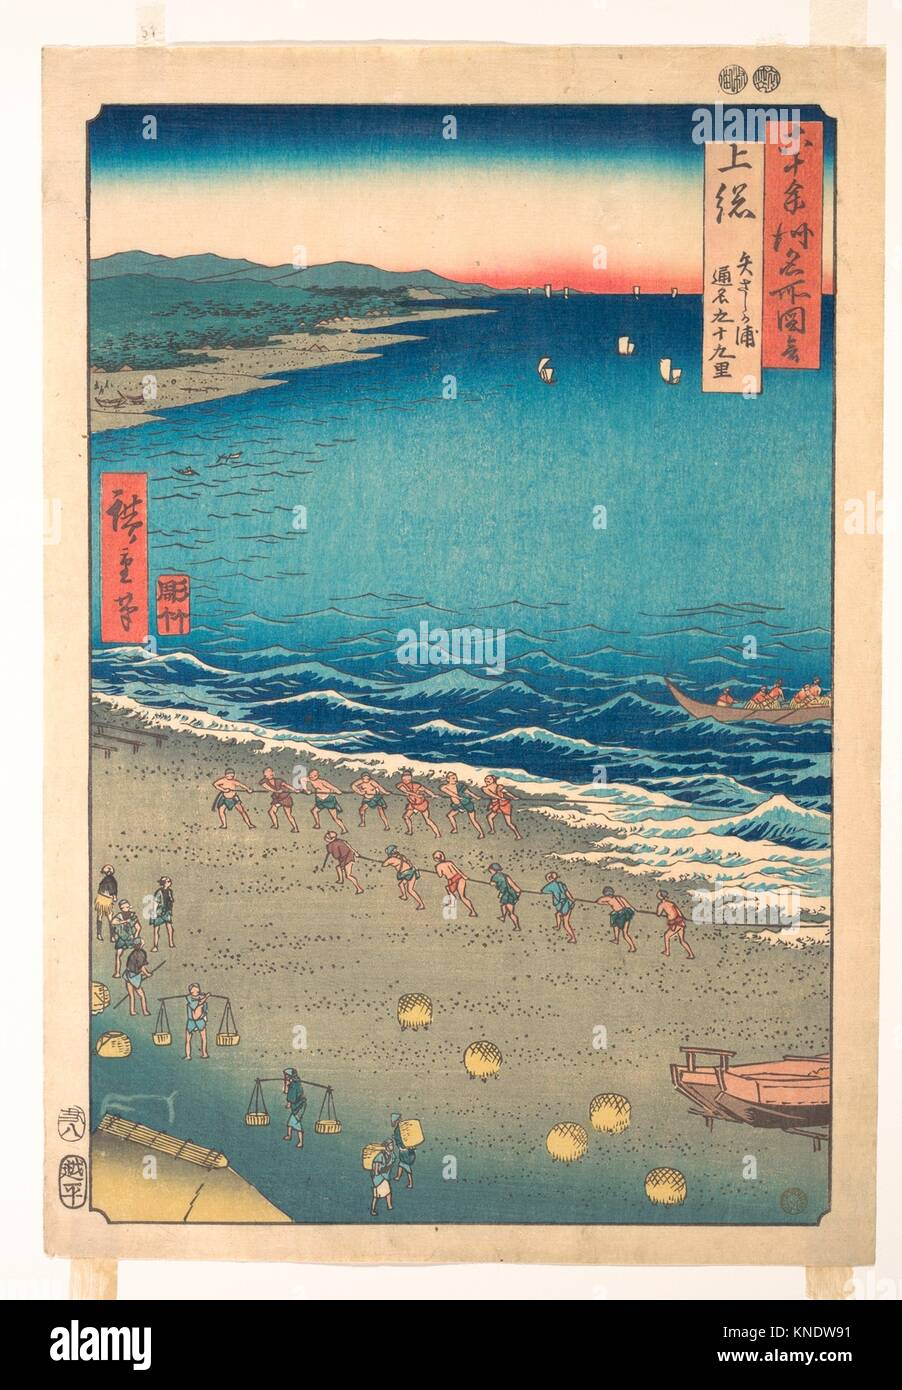 Yasashi Beach, known as Kujukuri, Kazusa Province, from the series Views of Famous Places in the Sixty-Odd Provinces. Stock Photo